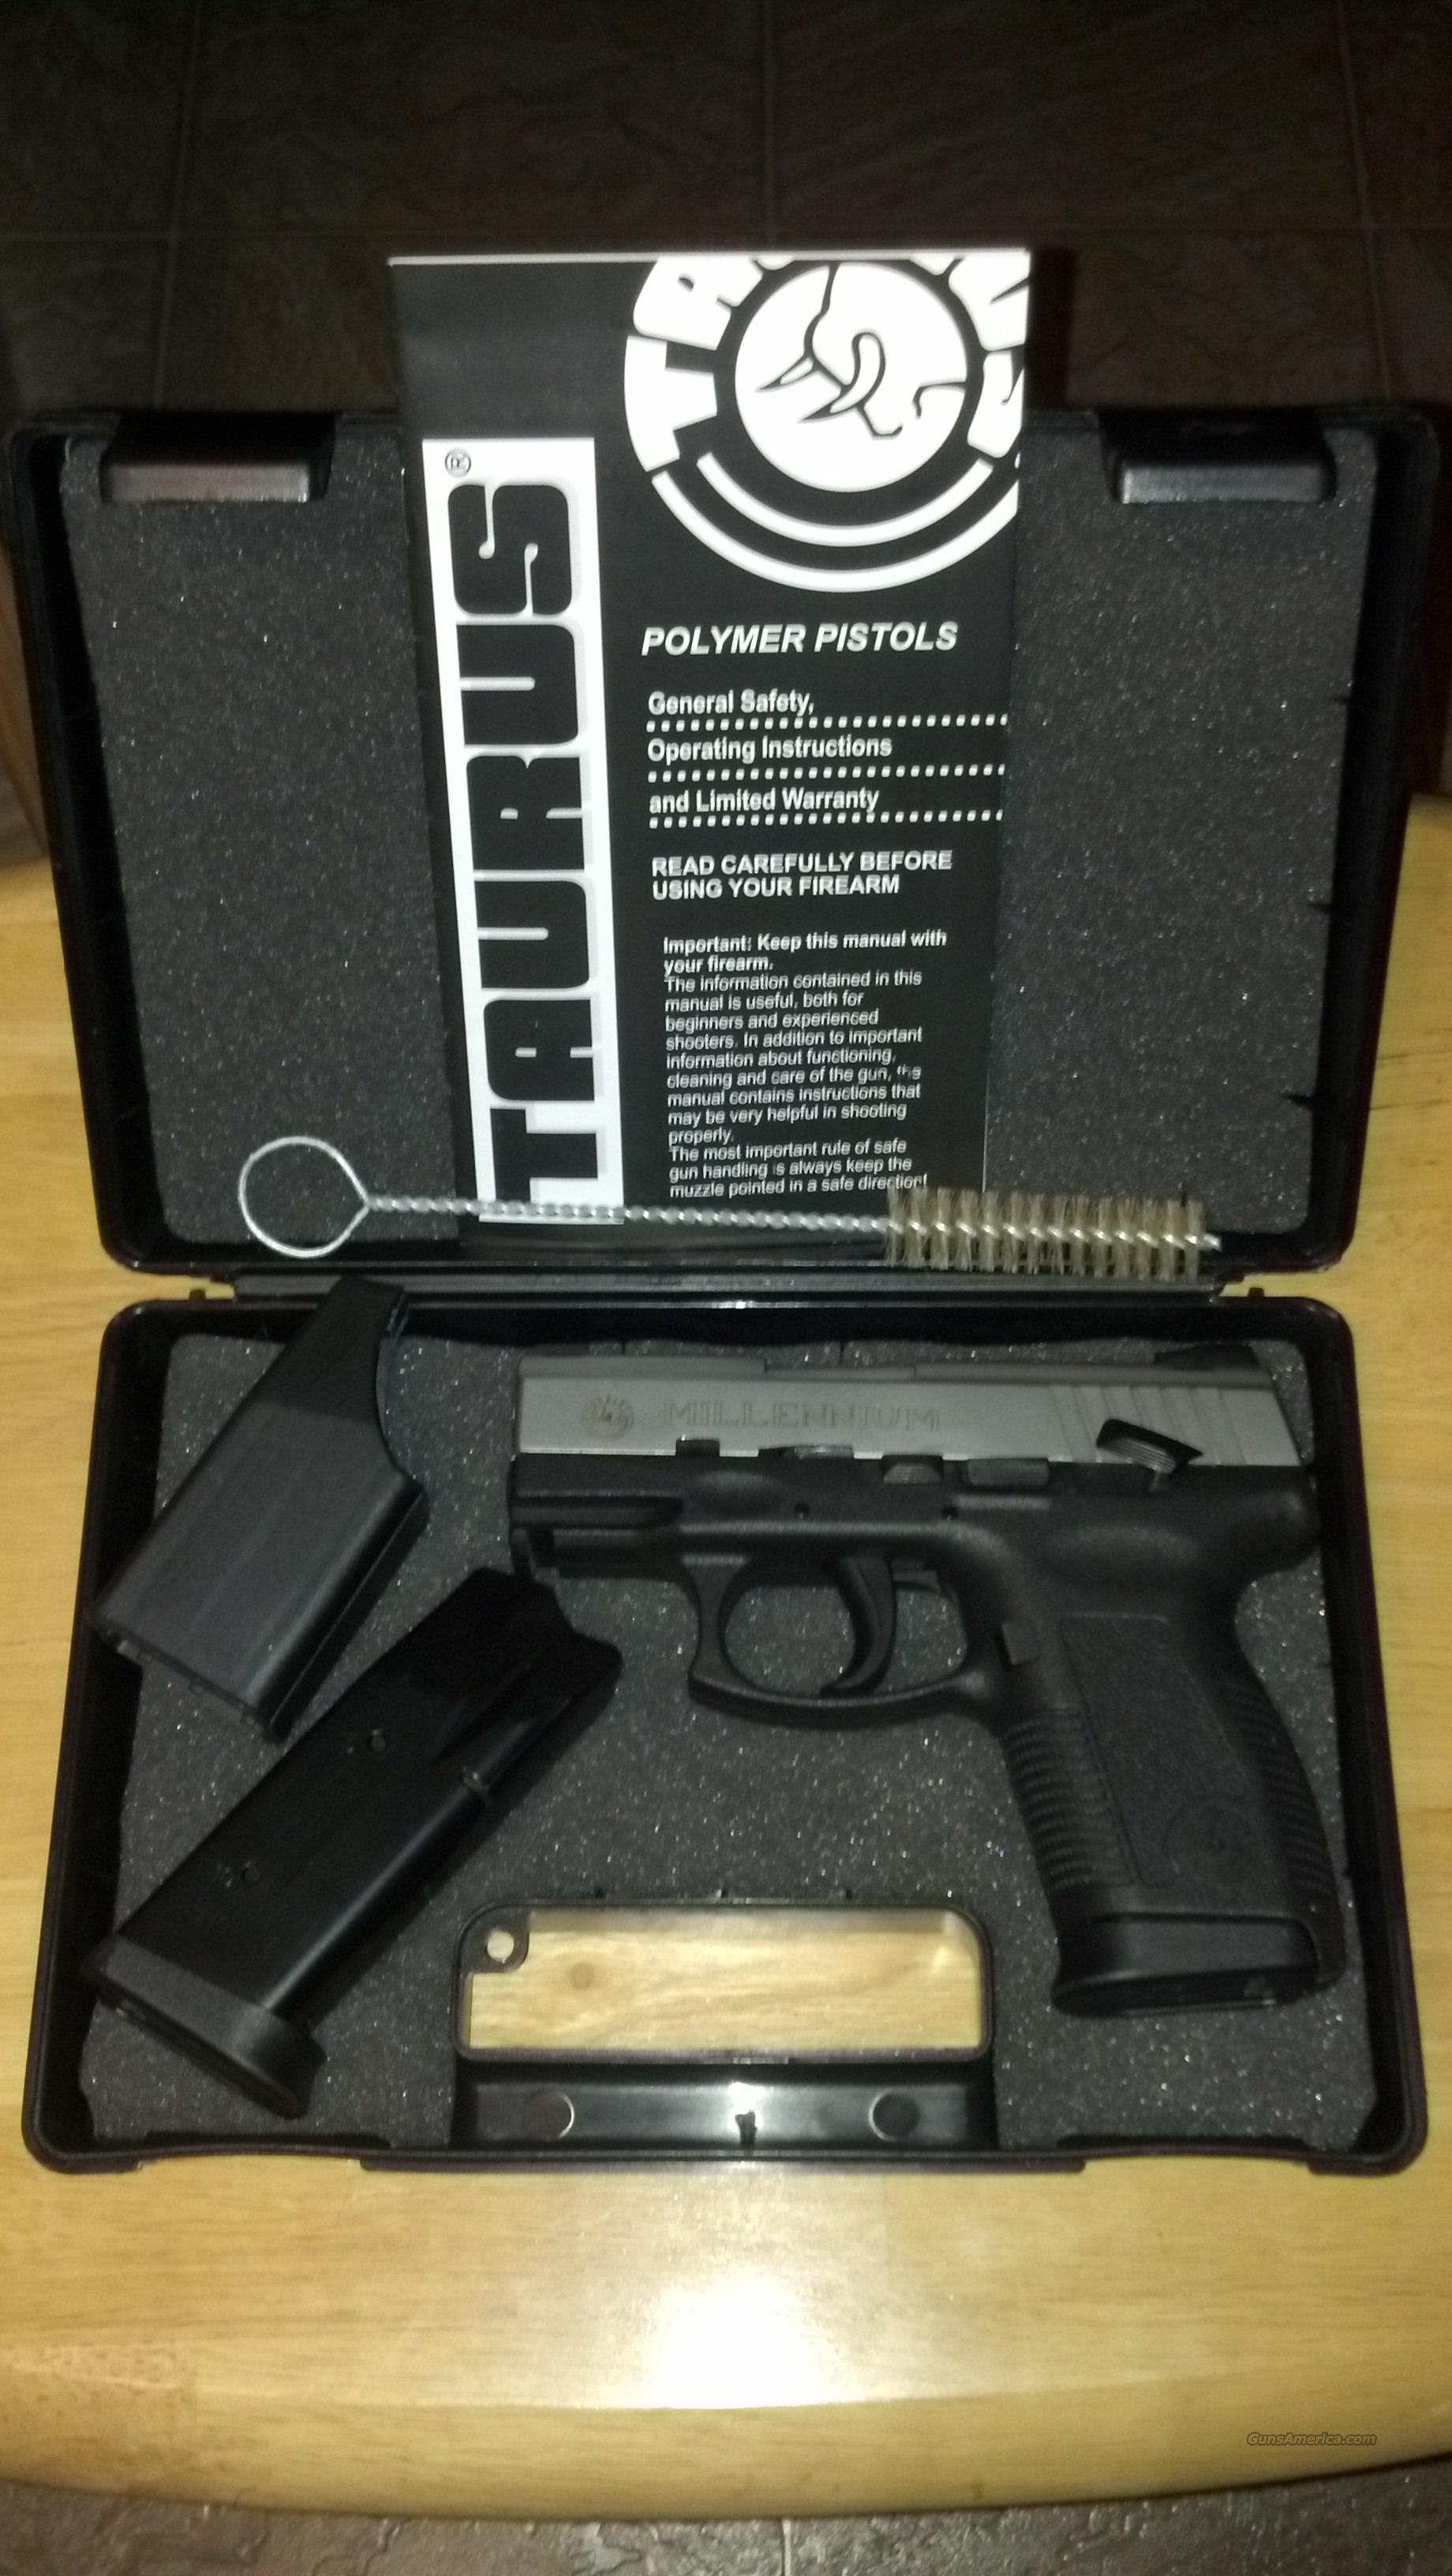 Taurus .45acp Millenium Pro Unfired Free Shipping  Guns > Pistols > Taurus Pistols/Revolvers > Pistols > Polymer Frame